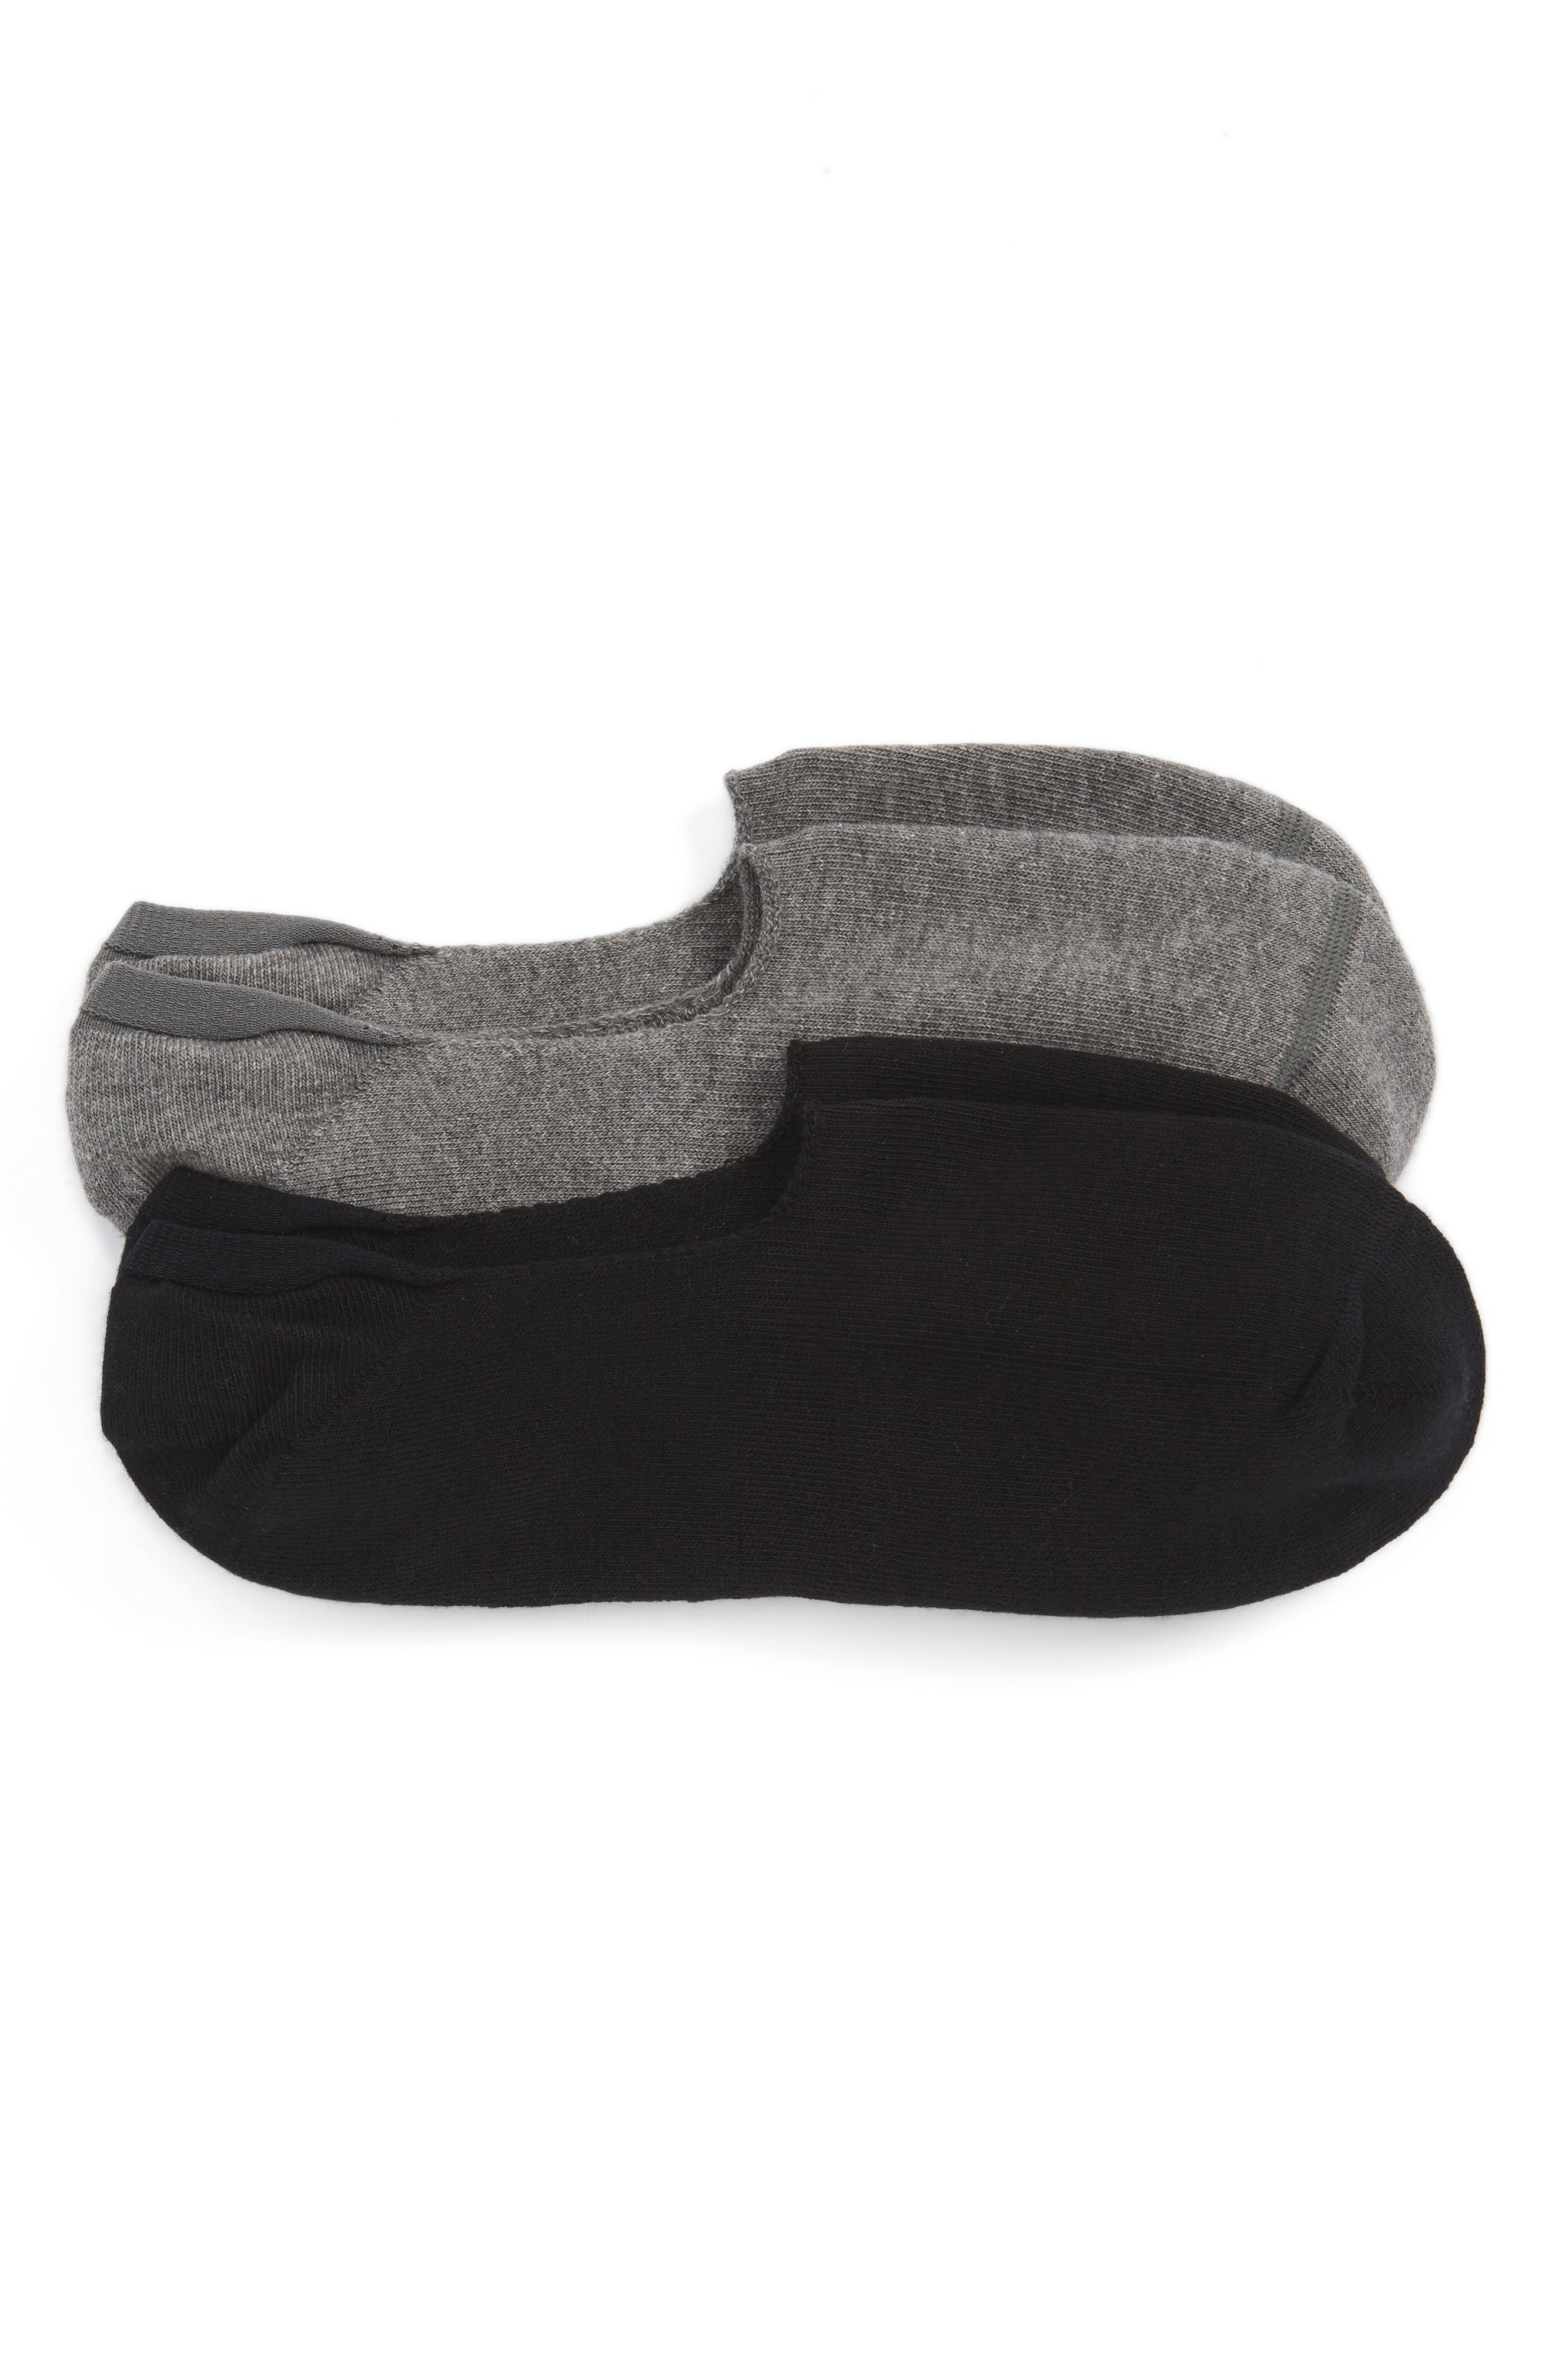 Alternate Image 1 Selected - Nordstrom Men's Shop 2-Pack Everyday Liner Socks (3 for $30)